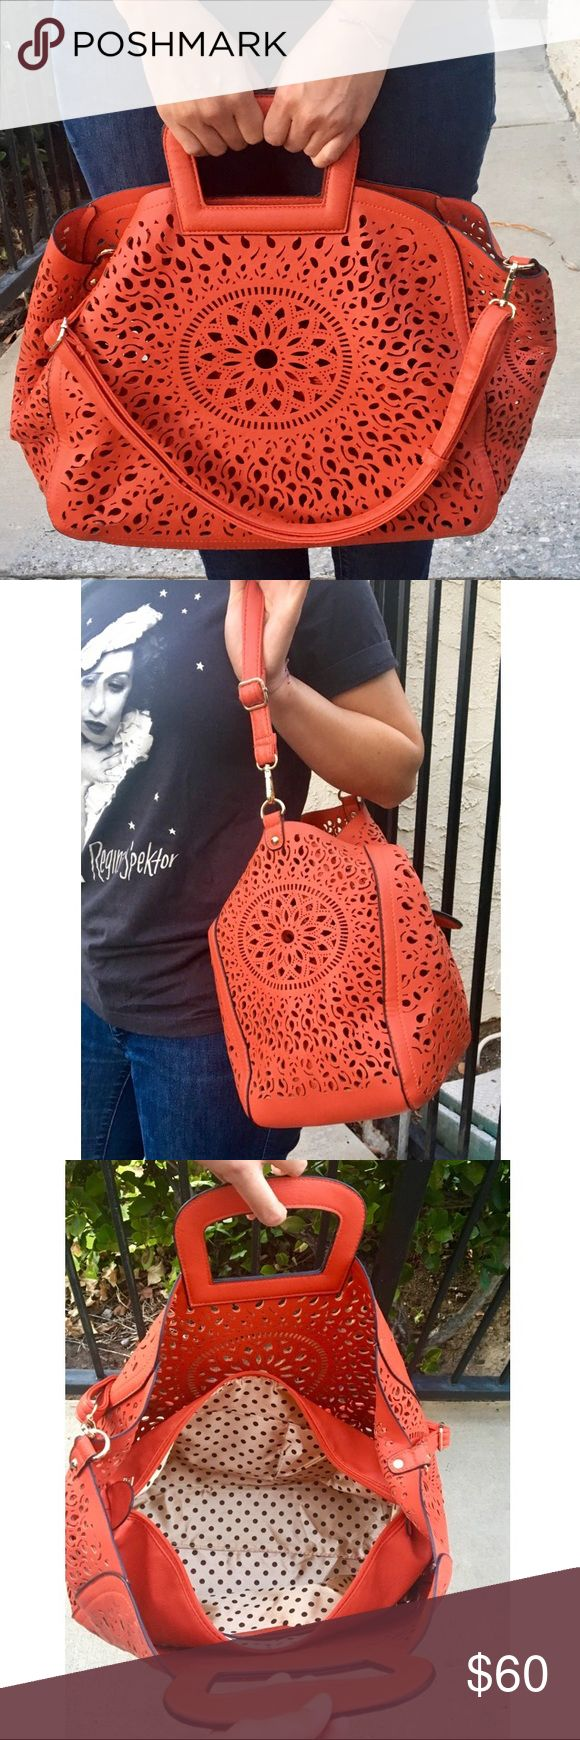 Melie Bianco Premium Vegan Leather Handbag Get this Hot Red handbag to spice up any of your summer outfits. The bag is perfect for city adventures and beach days.  Have fun with it! Melie Bianco Bags Satchels